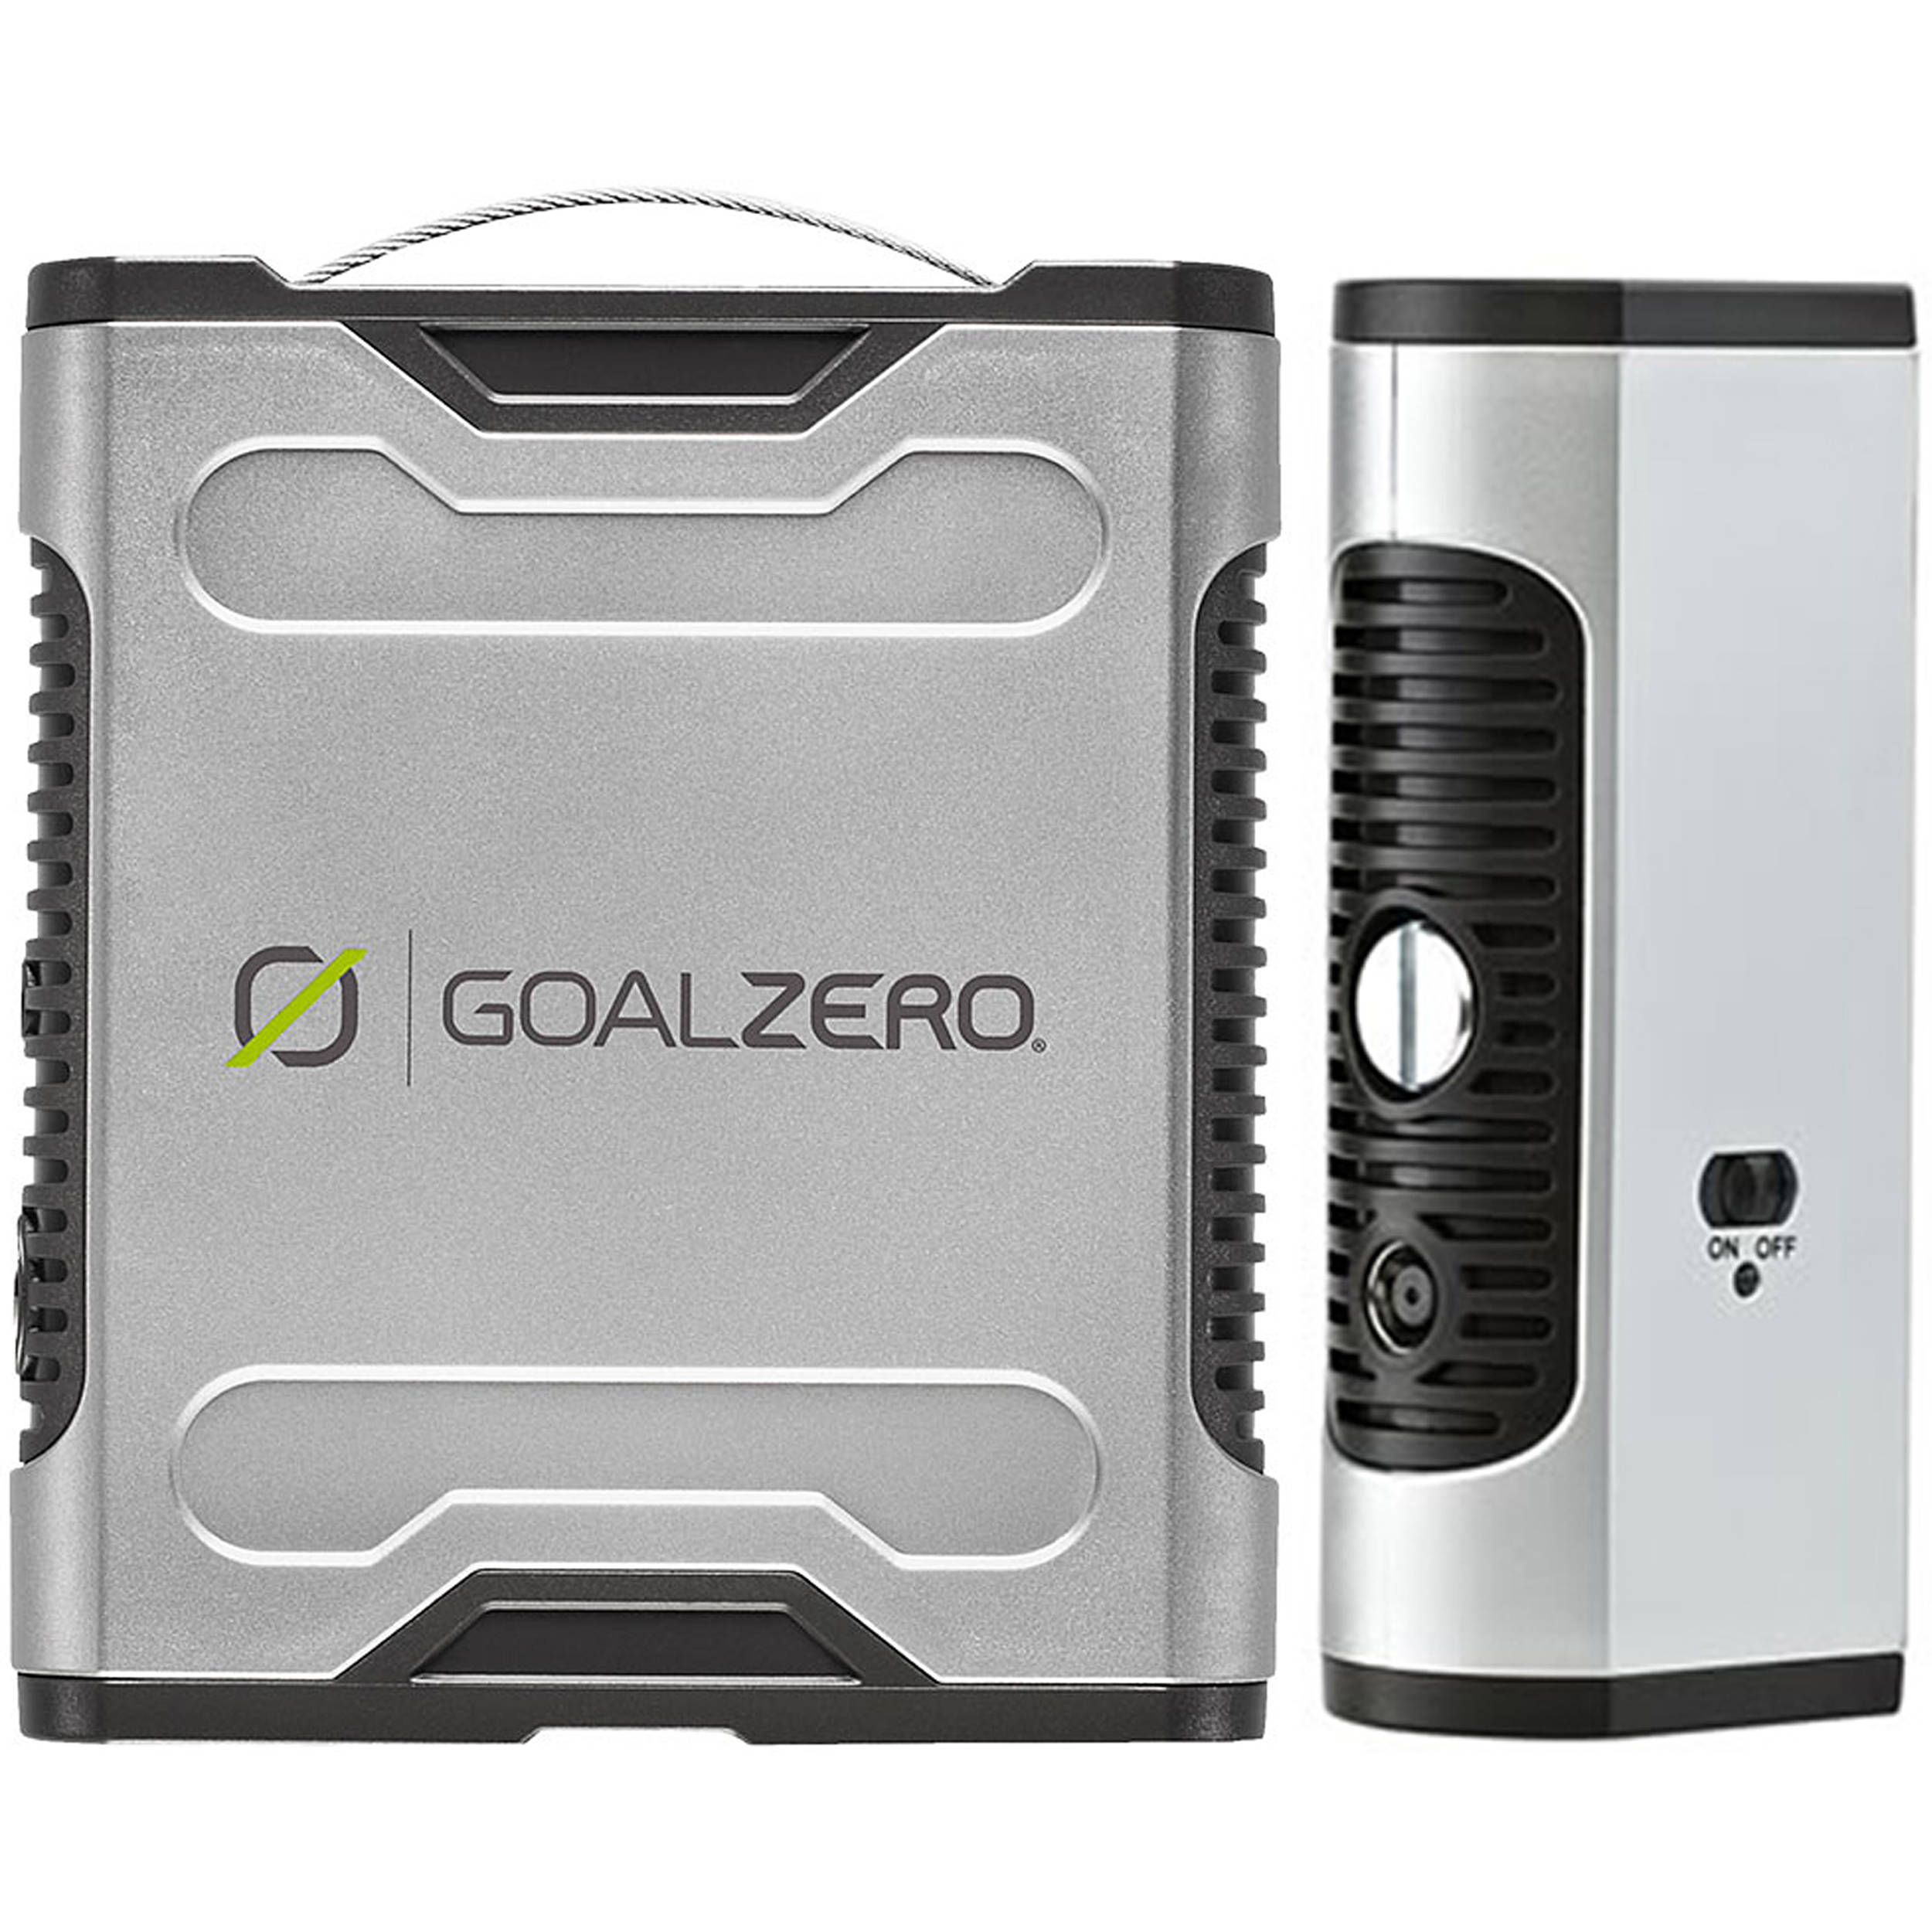 Goal Zero Sherpa 50 Power Pack With 110V AC Inverter 5200mAh//58Wh